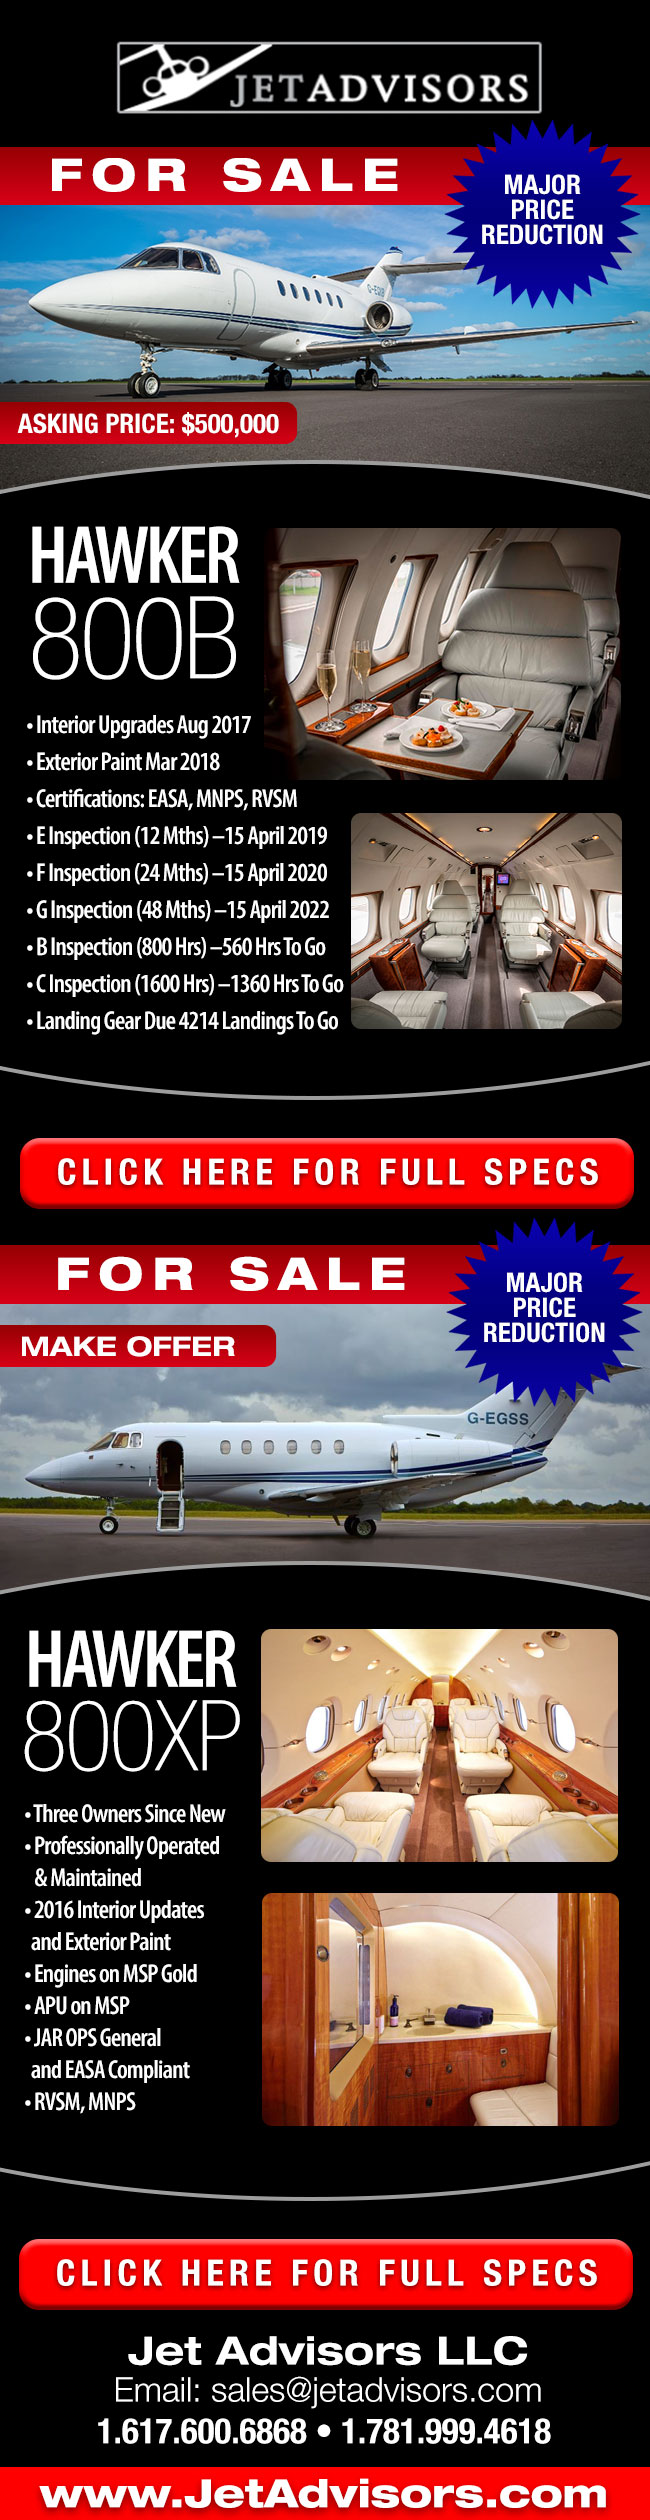 Jet Advisors | 1985 Hawker 800B and 2000 Hawker 800XP For Sale